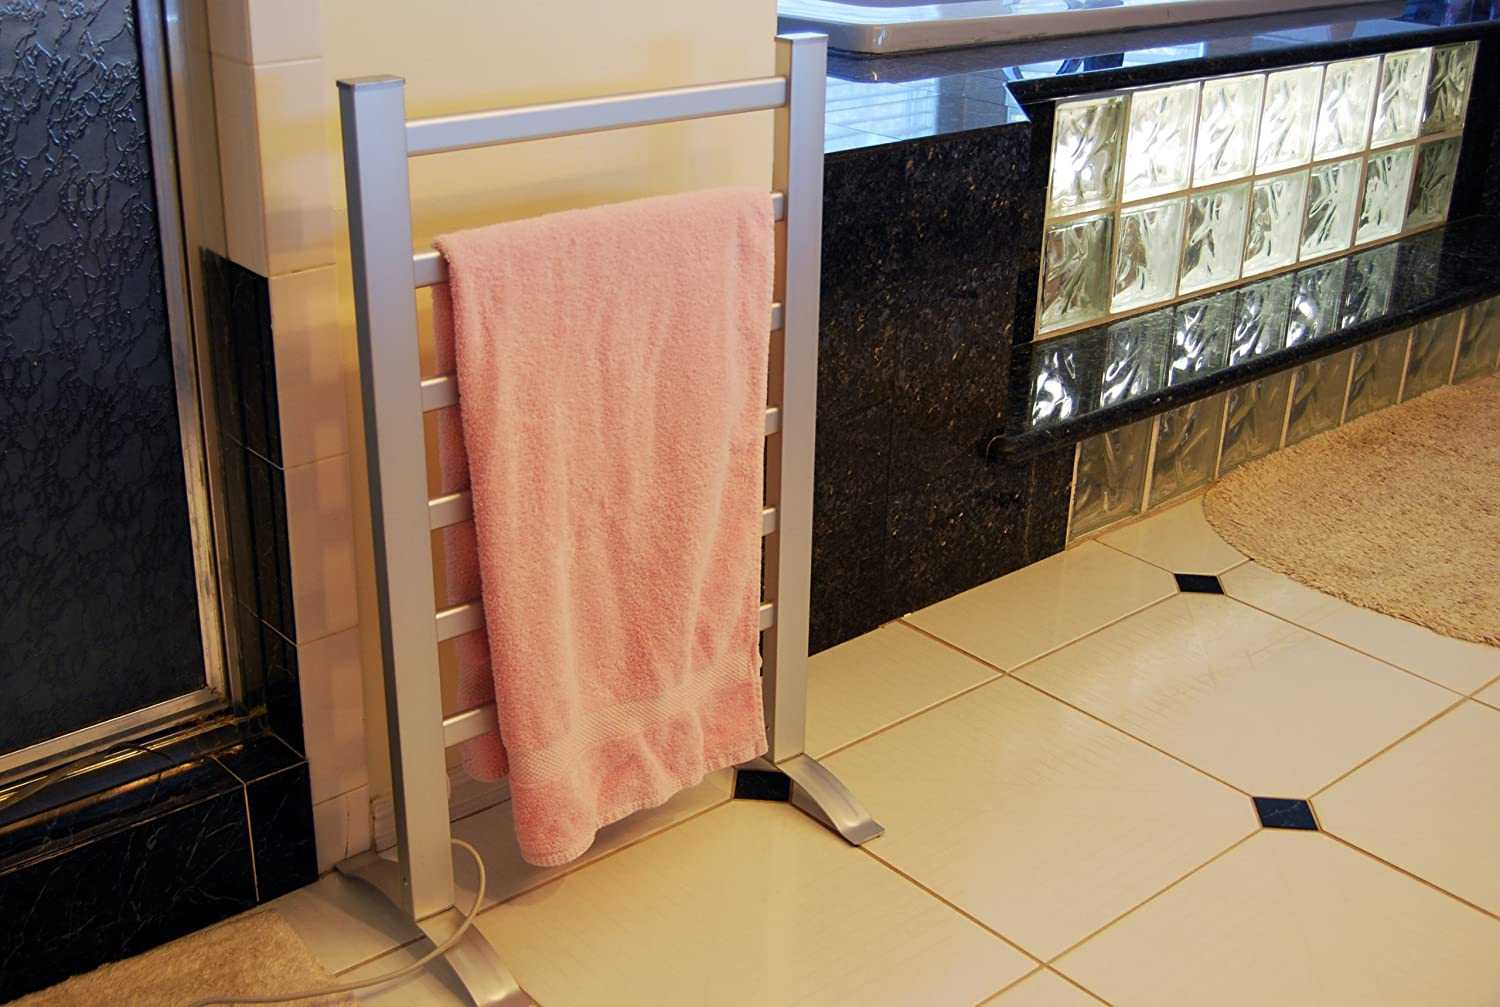 Amazoncom Lcm Home Fashion 6 Bar Freestanding Towel Warmer Drying